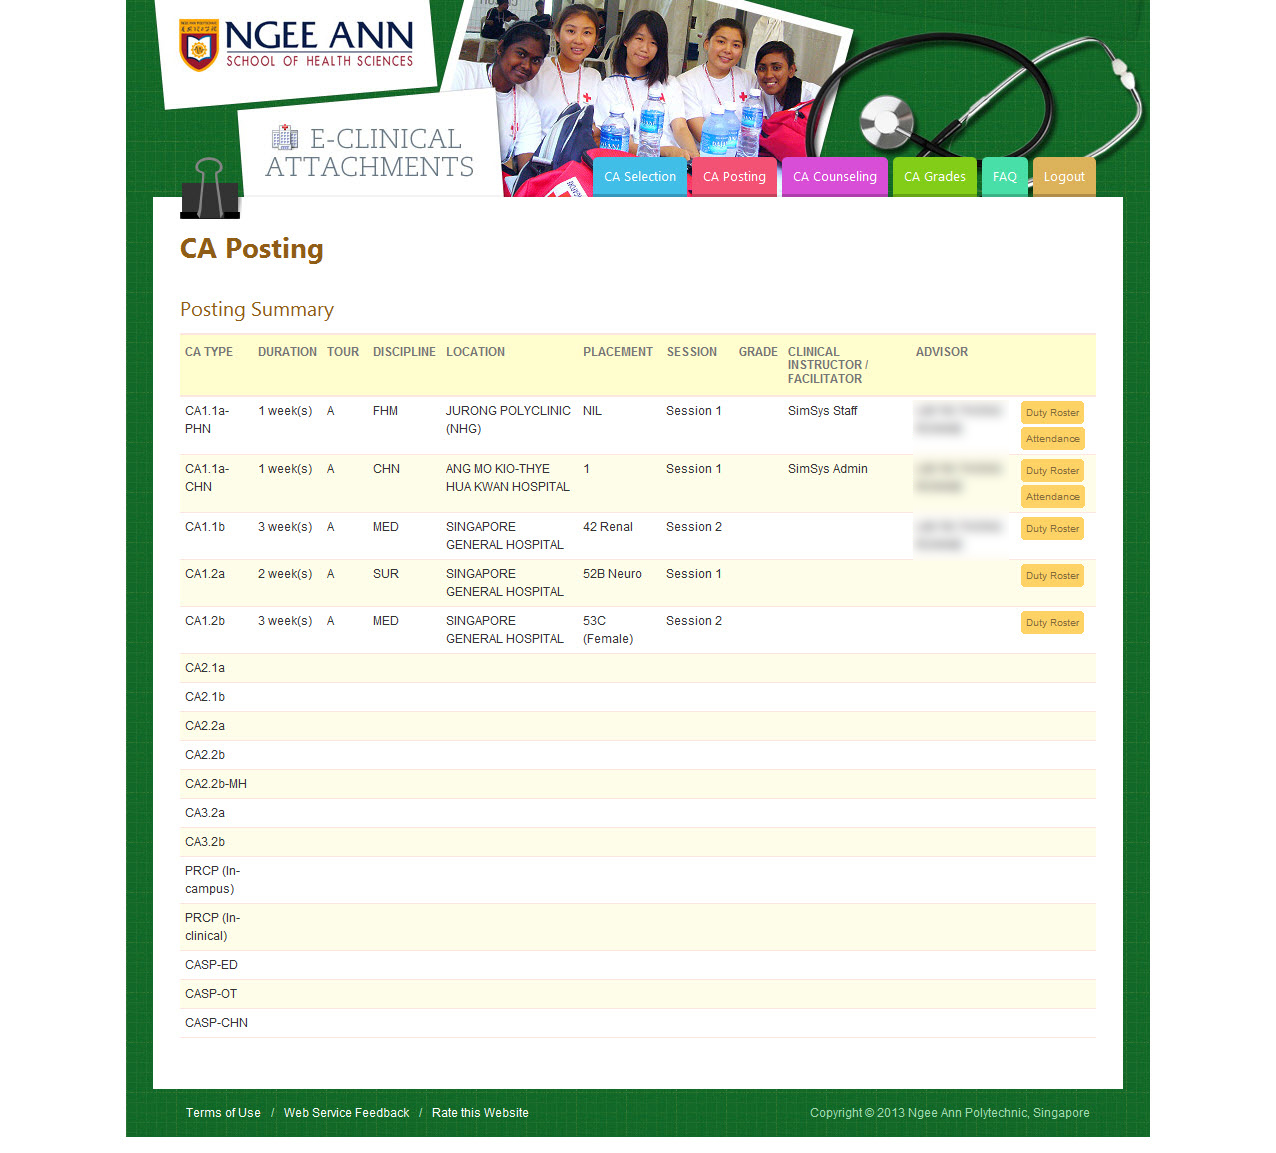 Ngee Ann Polytechnic - Clinical Posting Management System Image 13